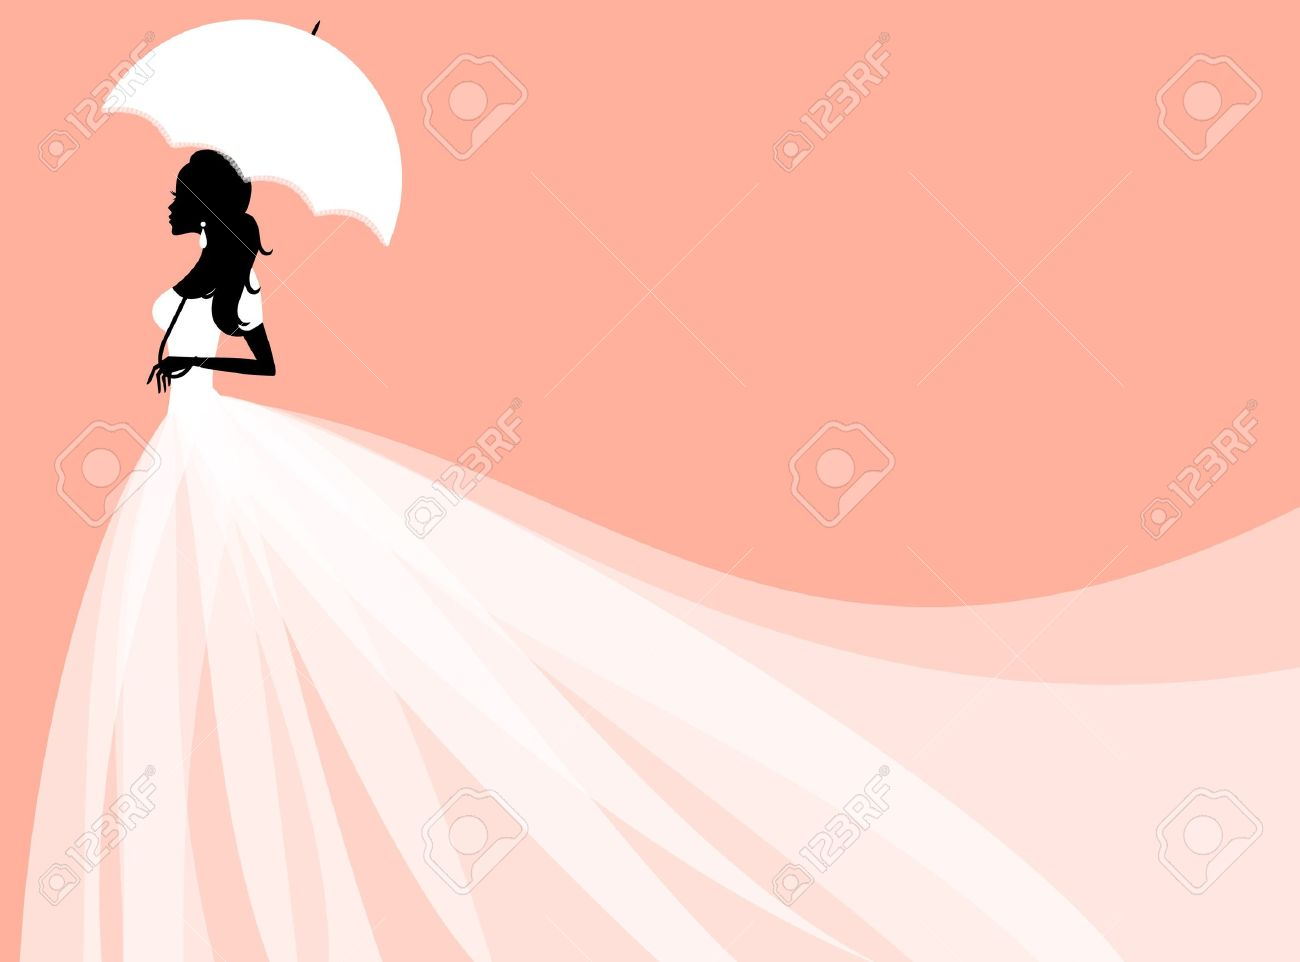 vector of a beautiful bride holding an umbrella perfect for bridal shower or wedding invitation